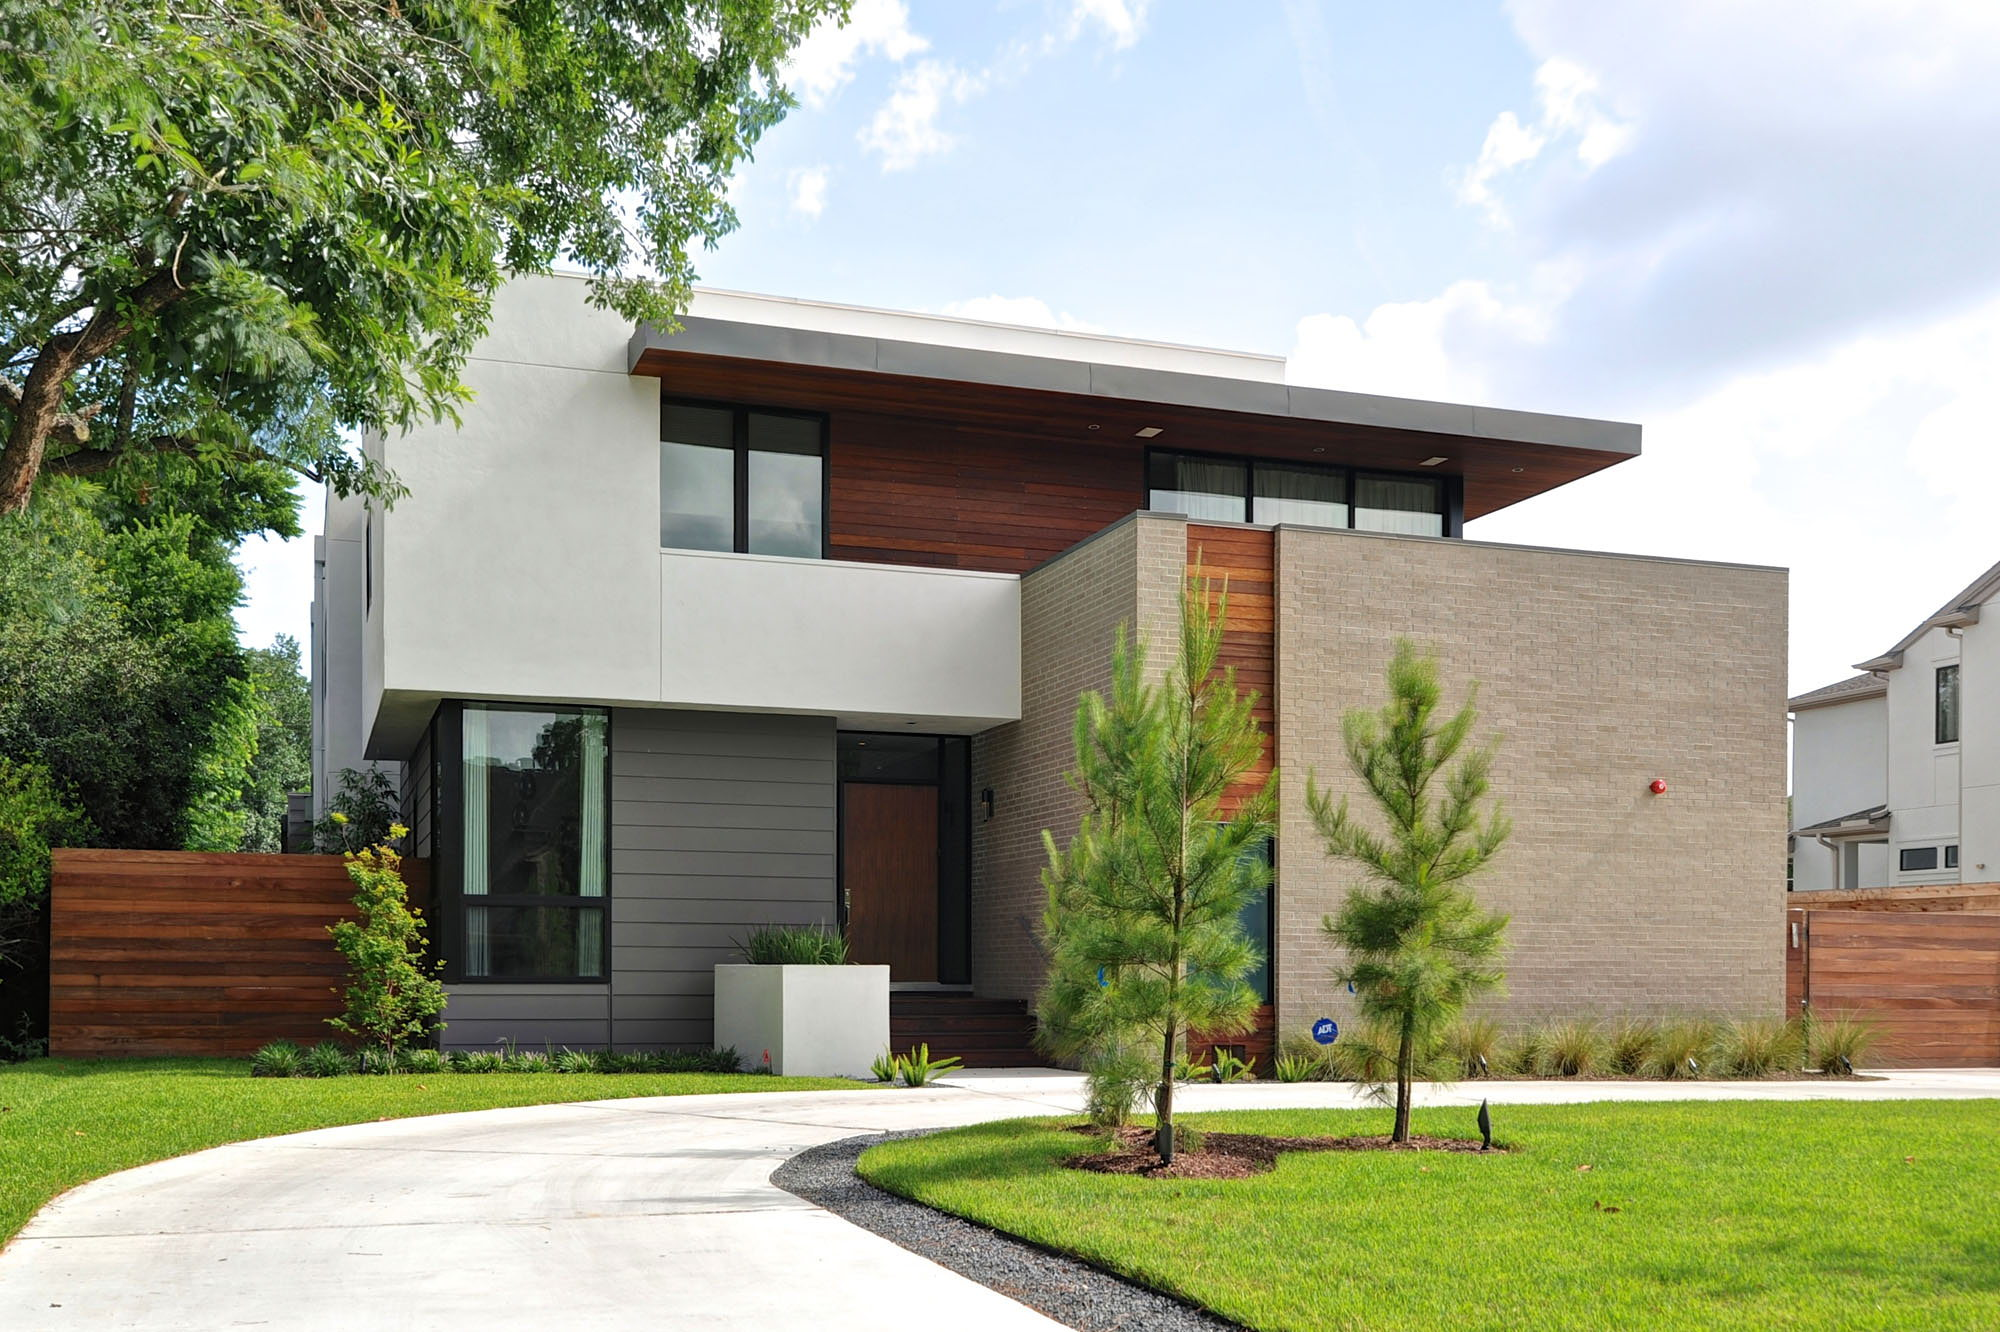 Modern house in houston from architectural firm studiomet for Mordern house